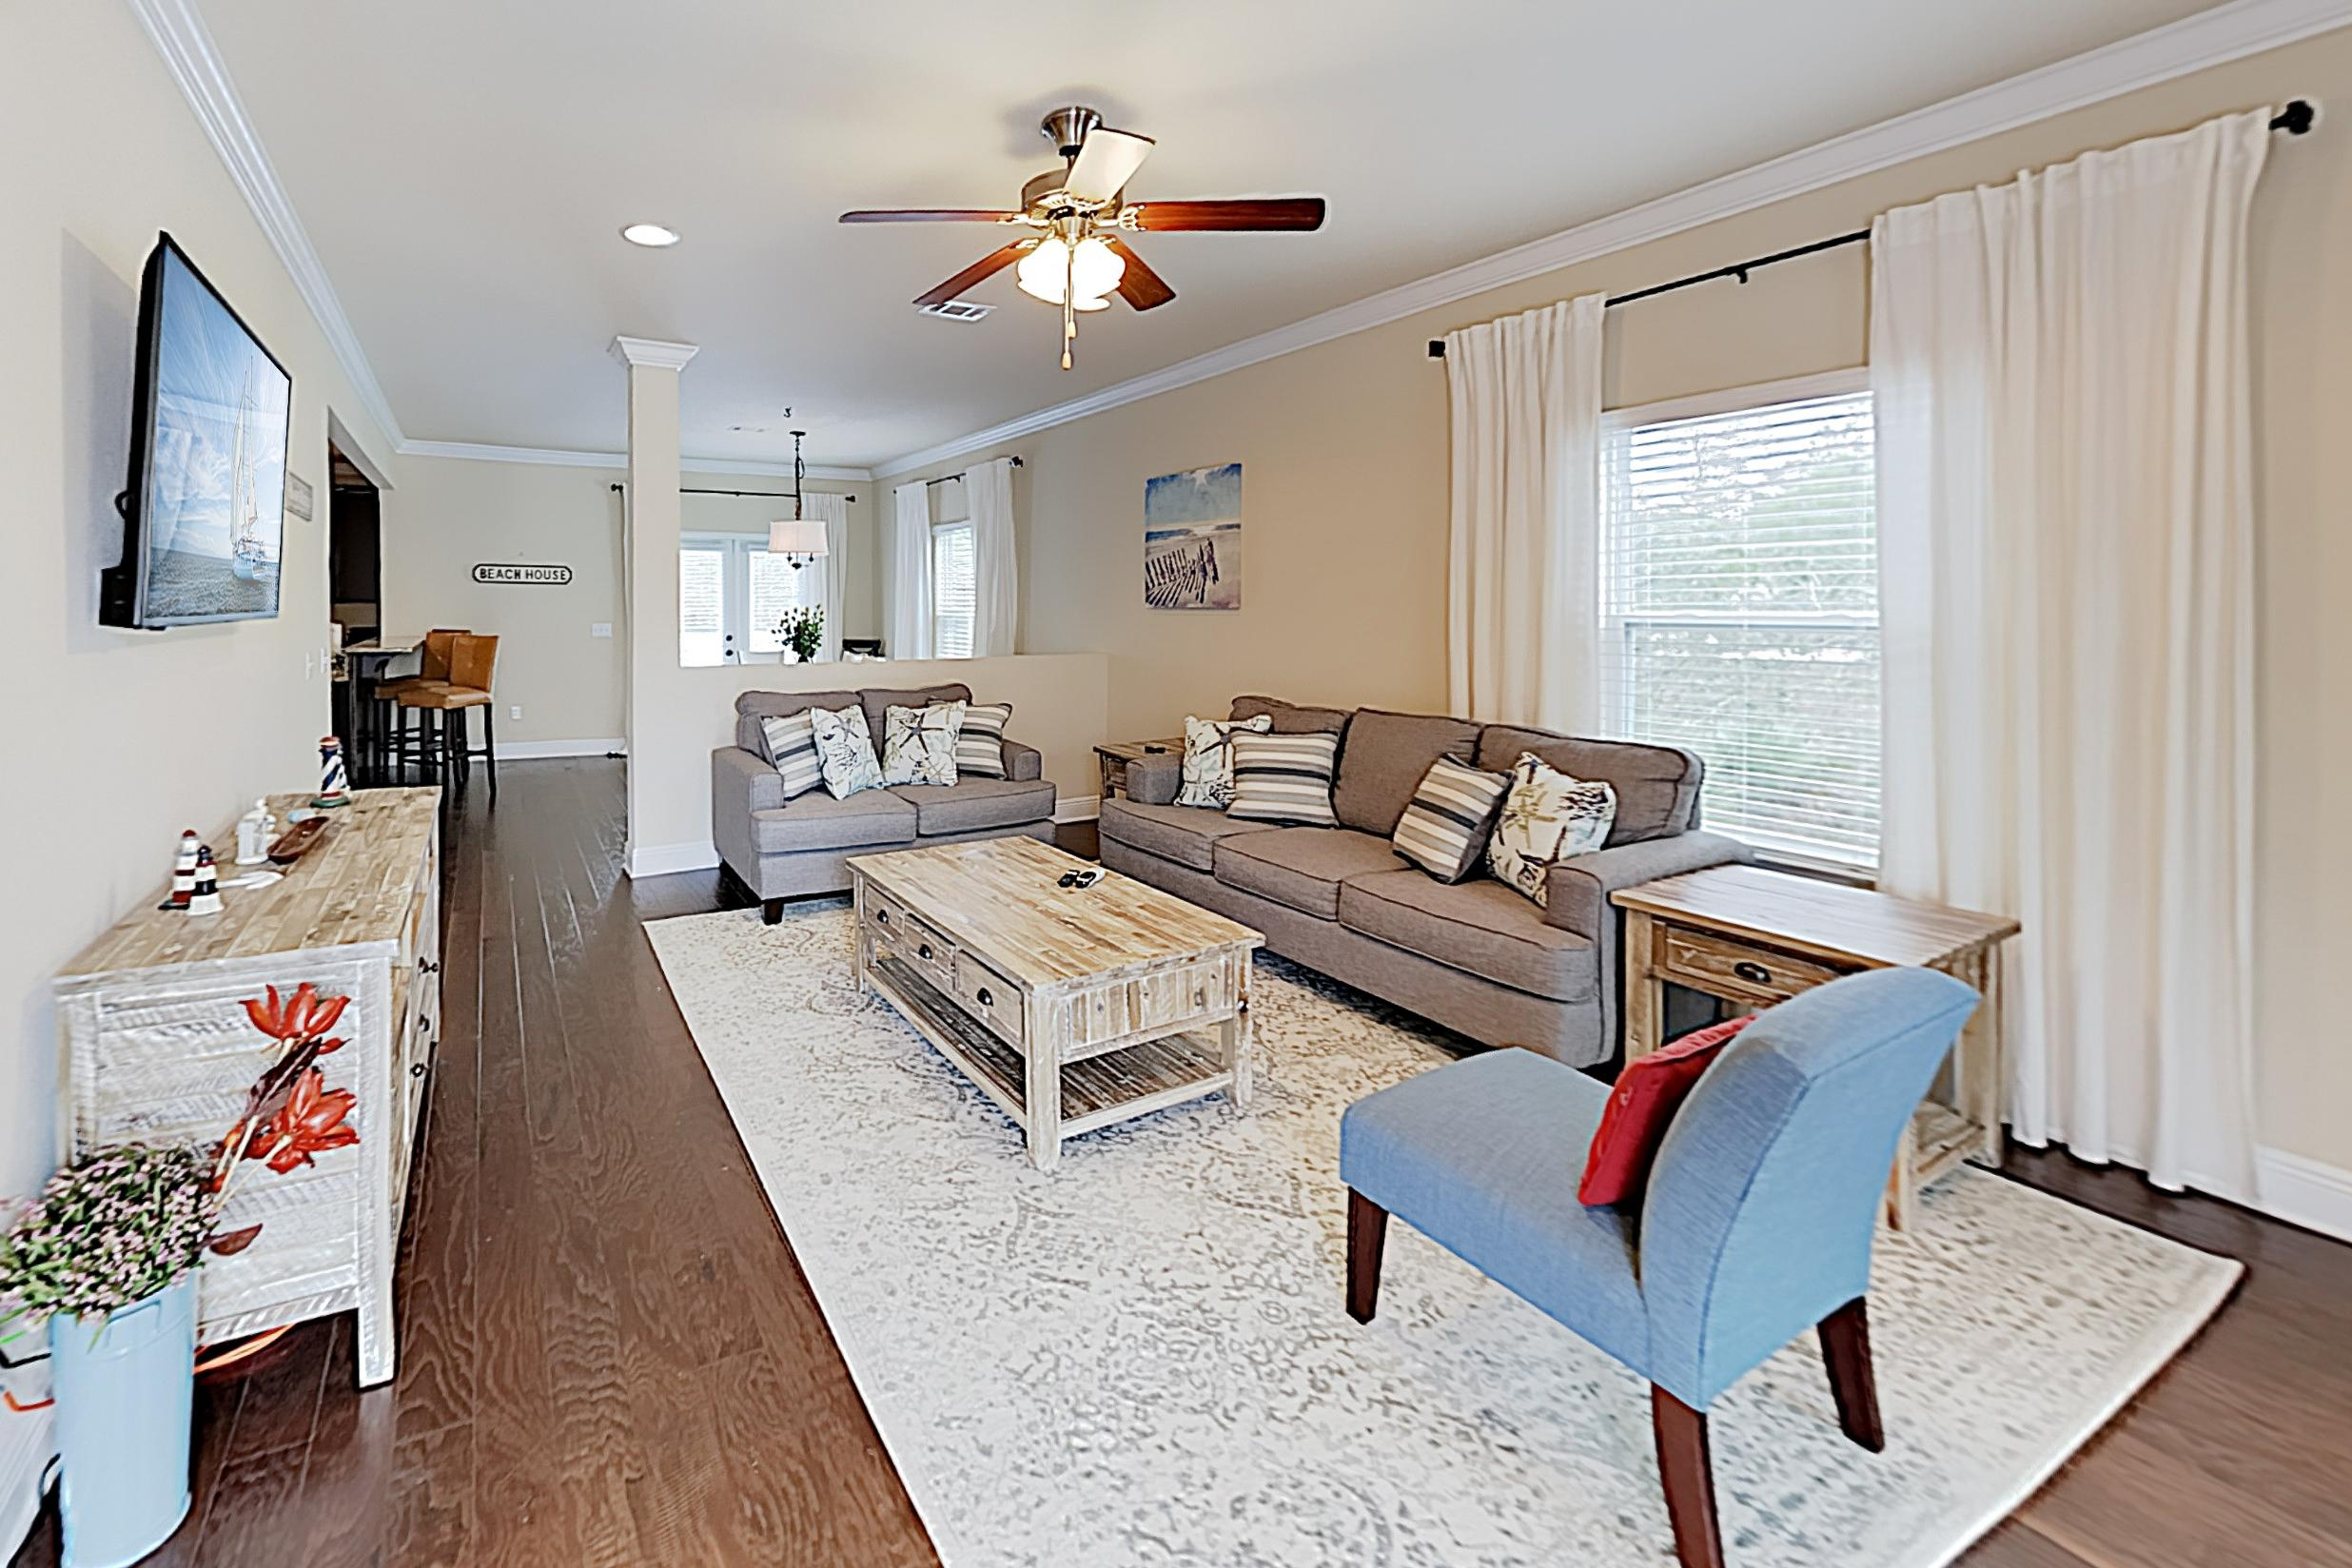 Welcome to Inlet Beach! This home is professionally managed by TurnKey Vacation Rentals.